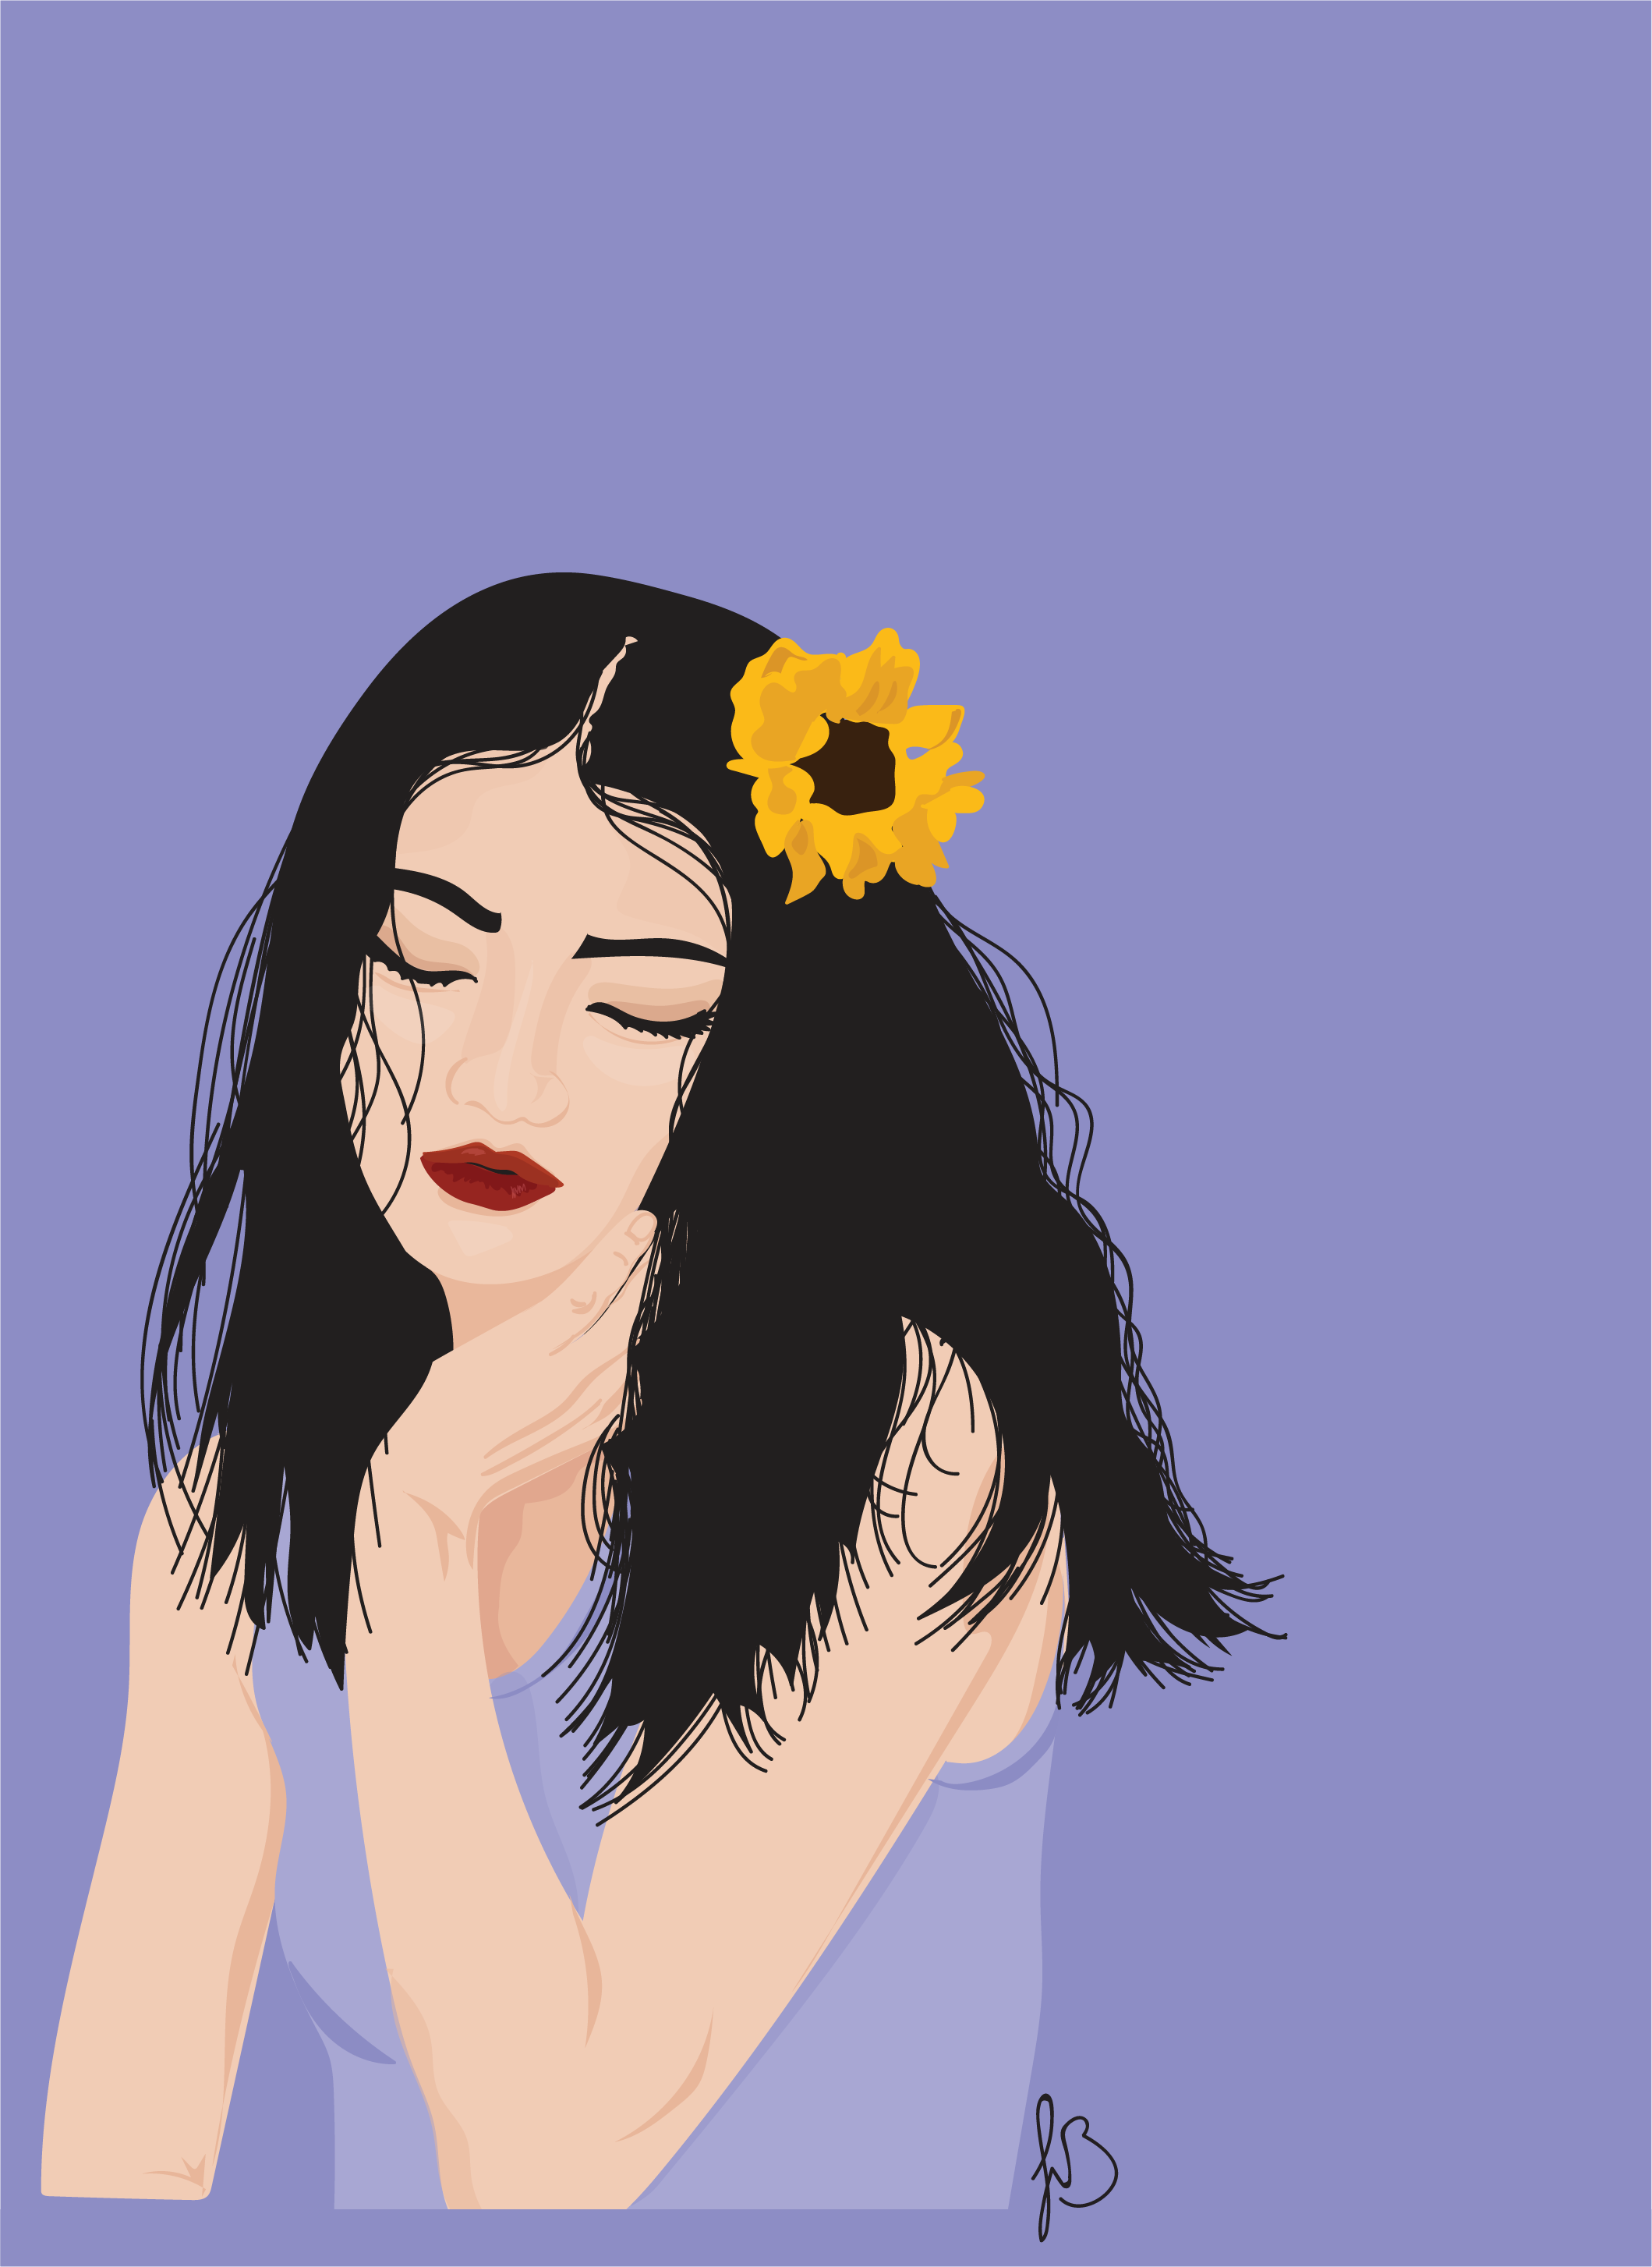 Sunflower In Hair Illustration by Jolie Brownell.png